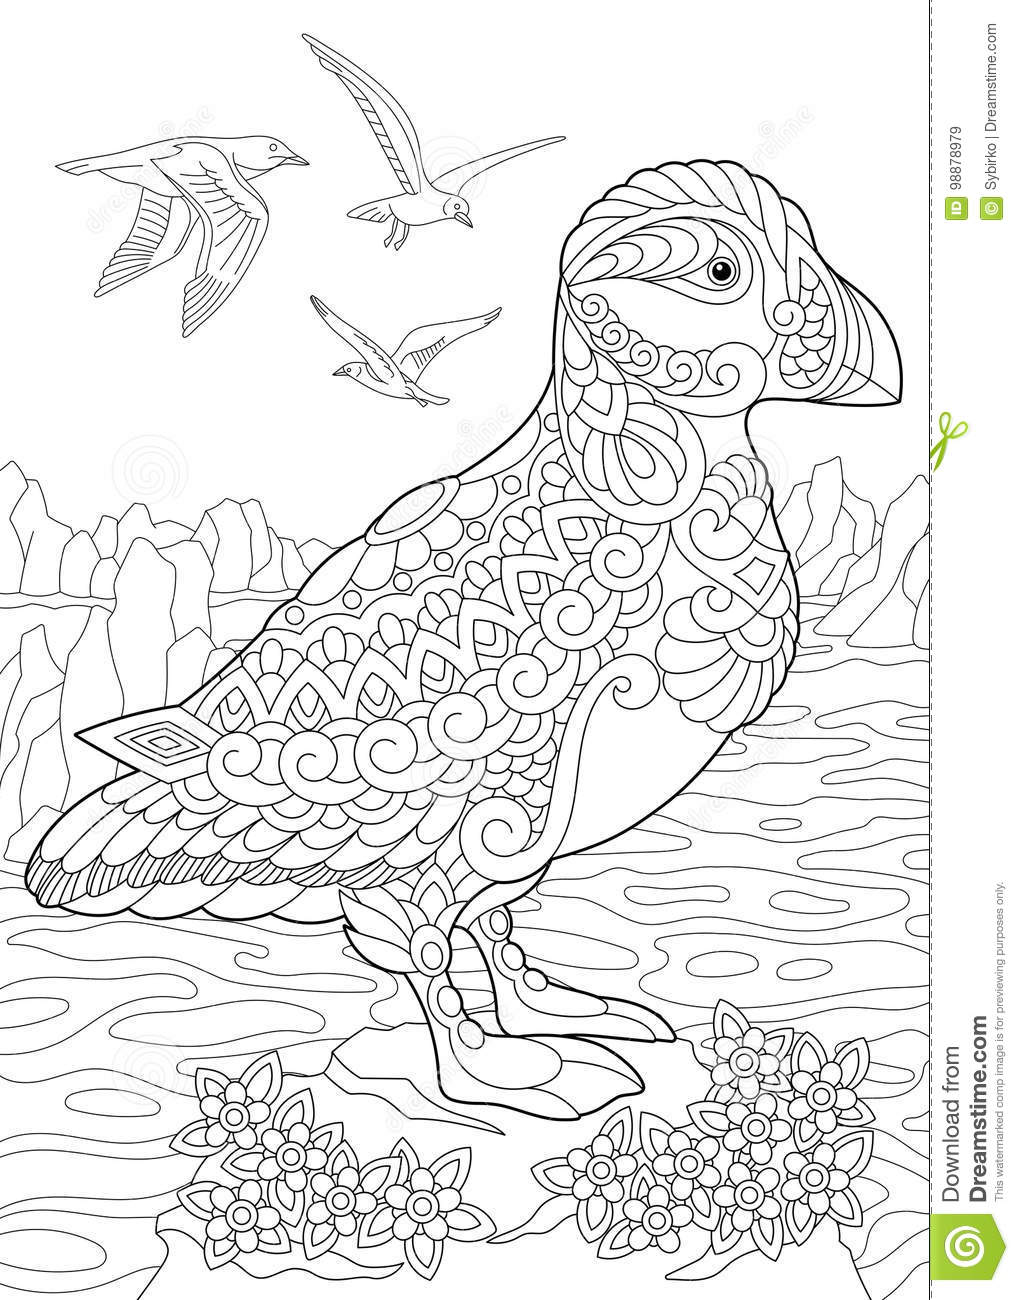 Zentangle Stylized Puffin Bird